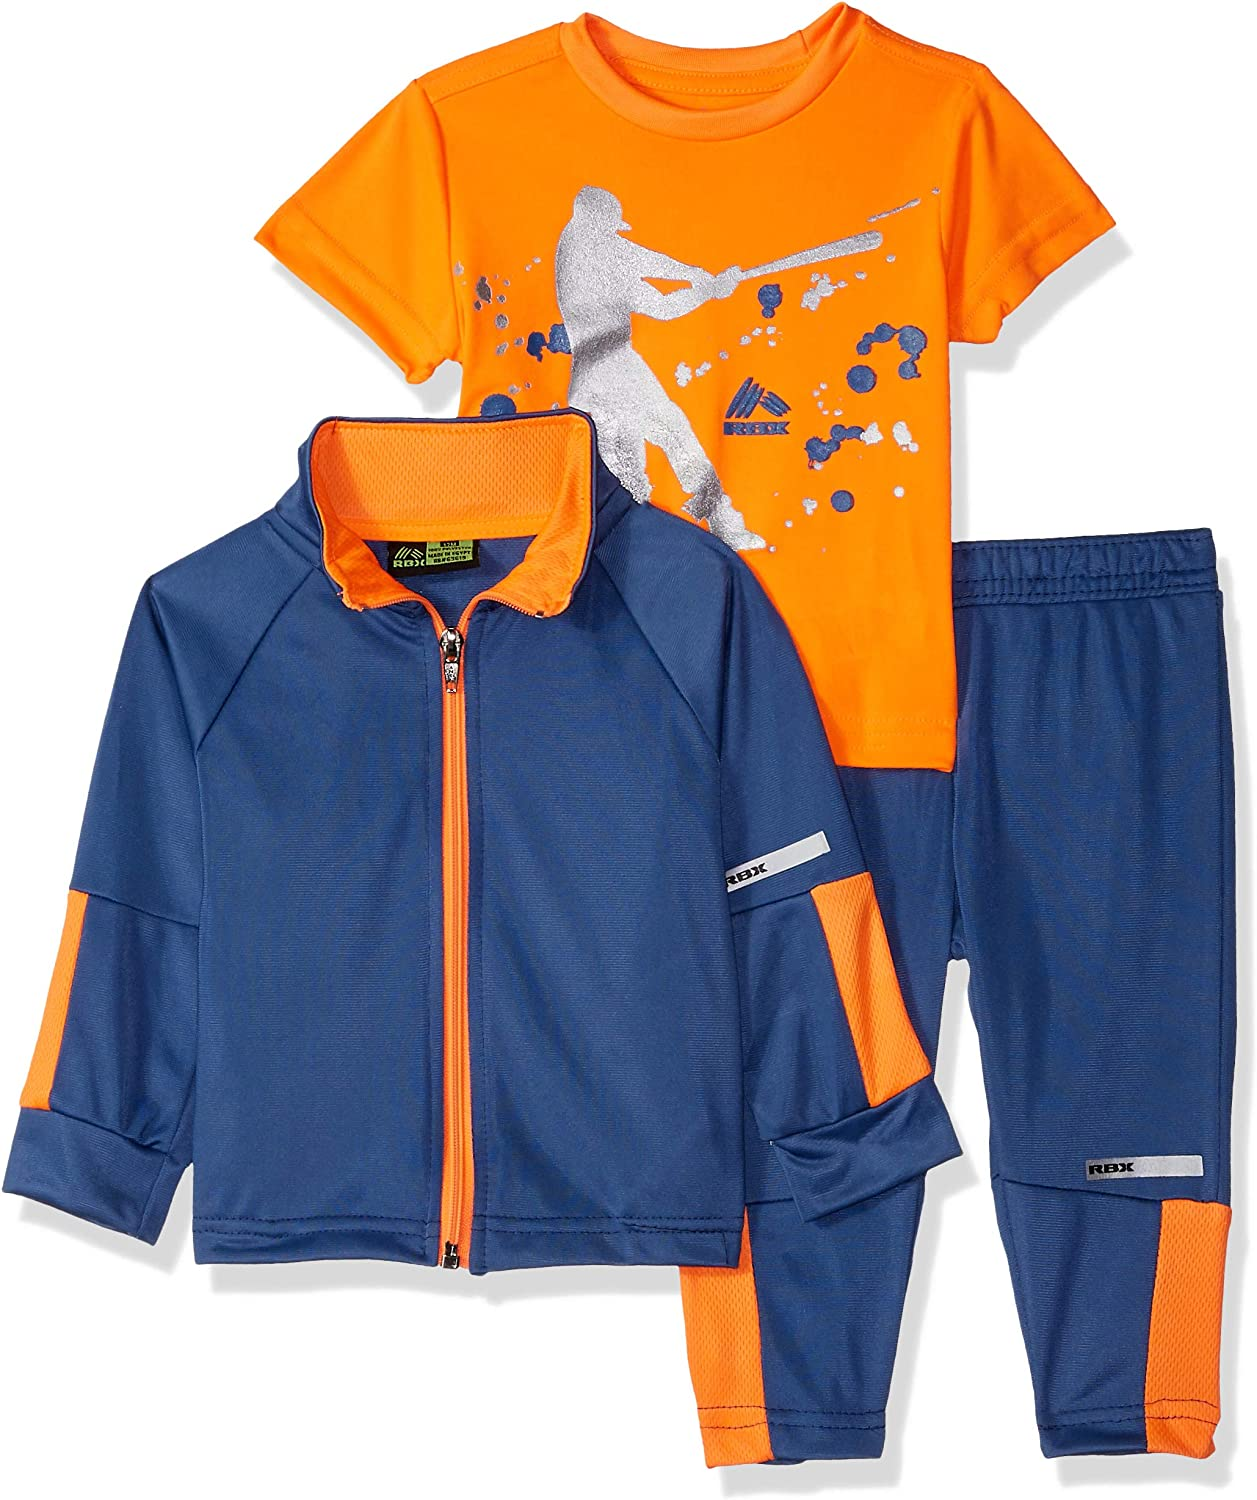 Tee and Pant Set RBX Boys Tricot Jacket